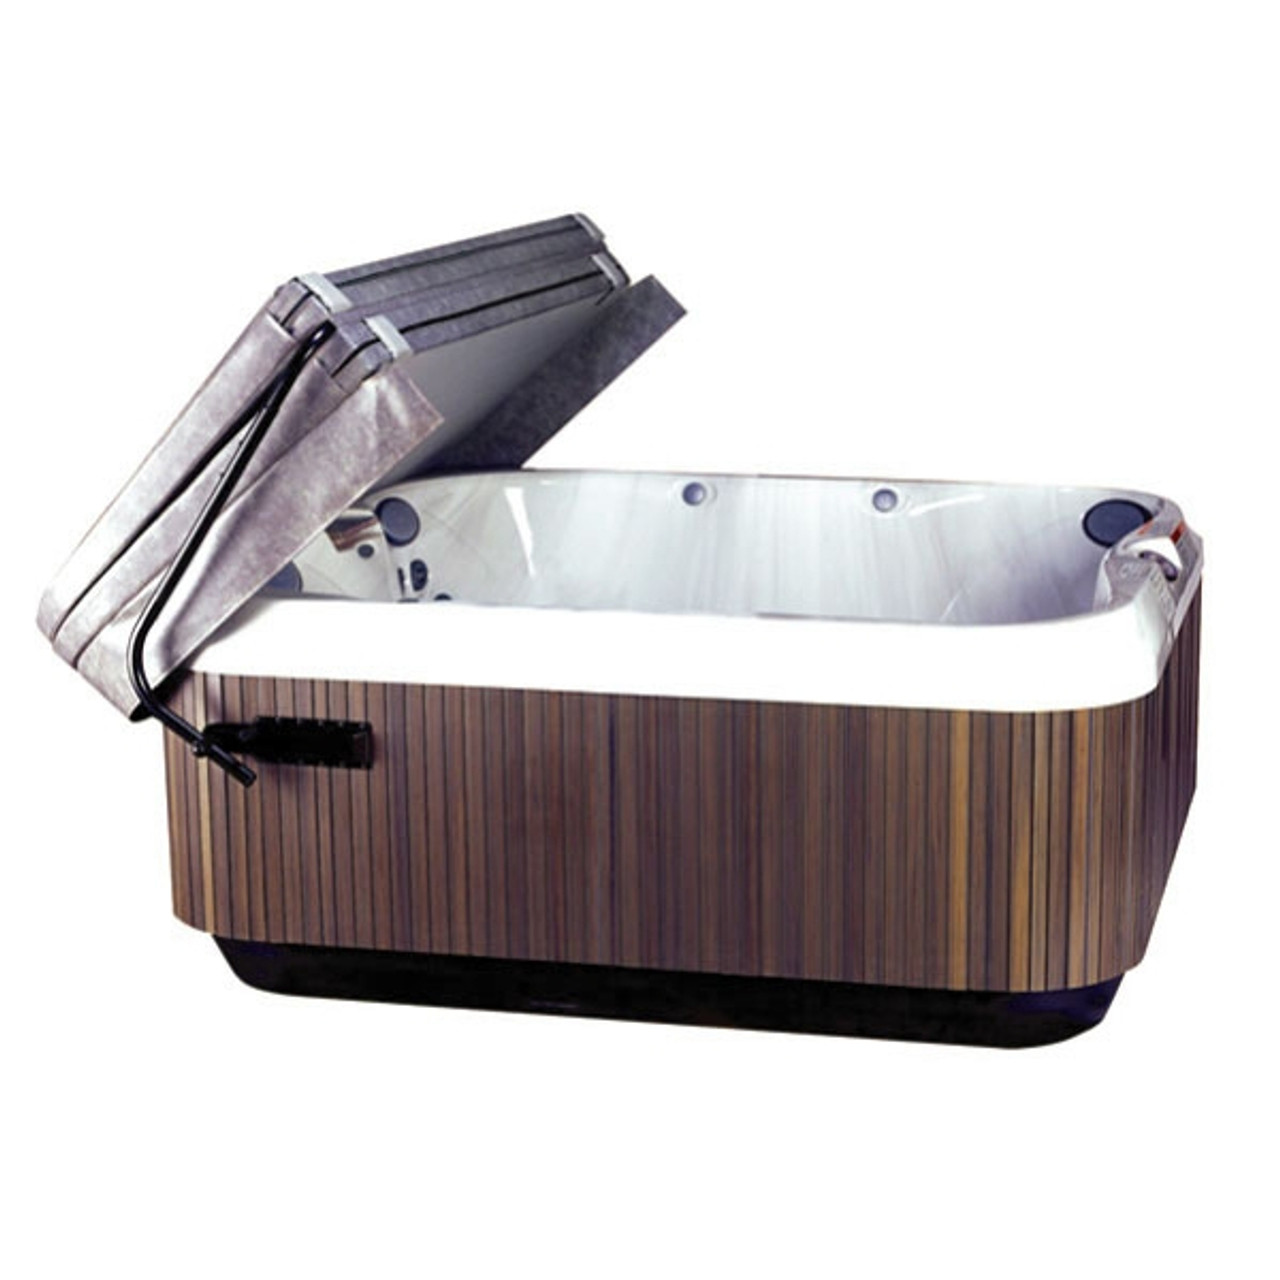 com spa spadepot covermate under lift tub cover a lifter mount hot ii